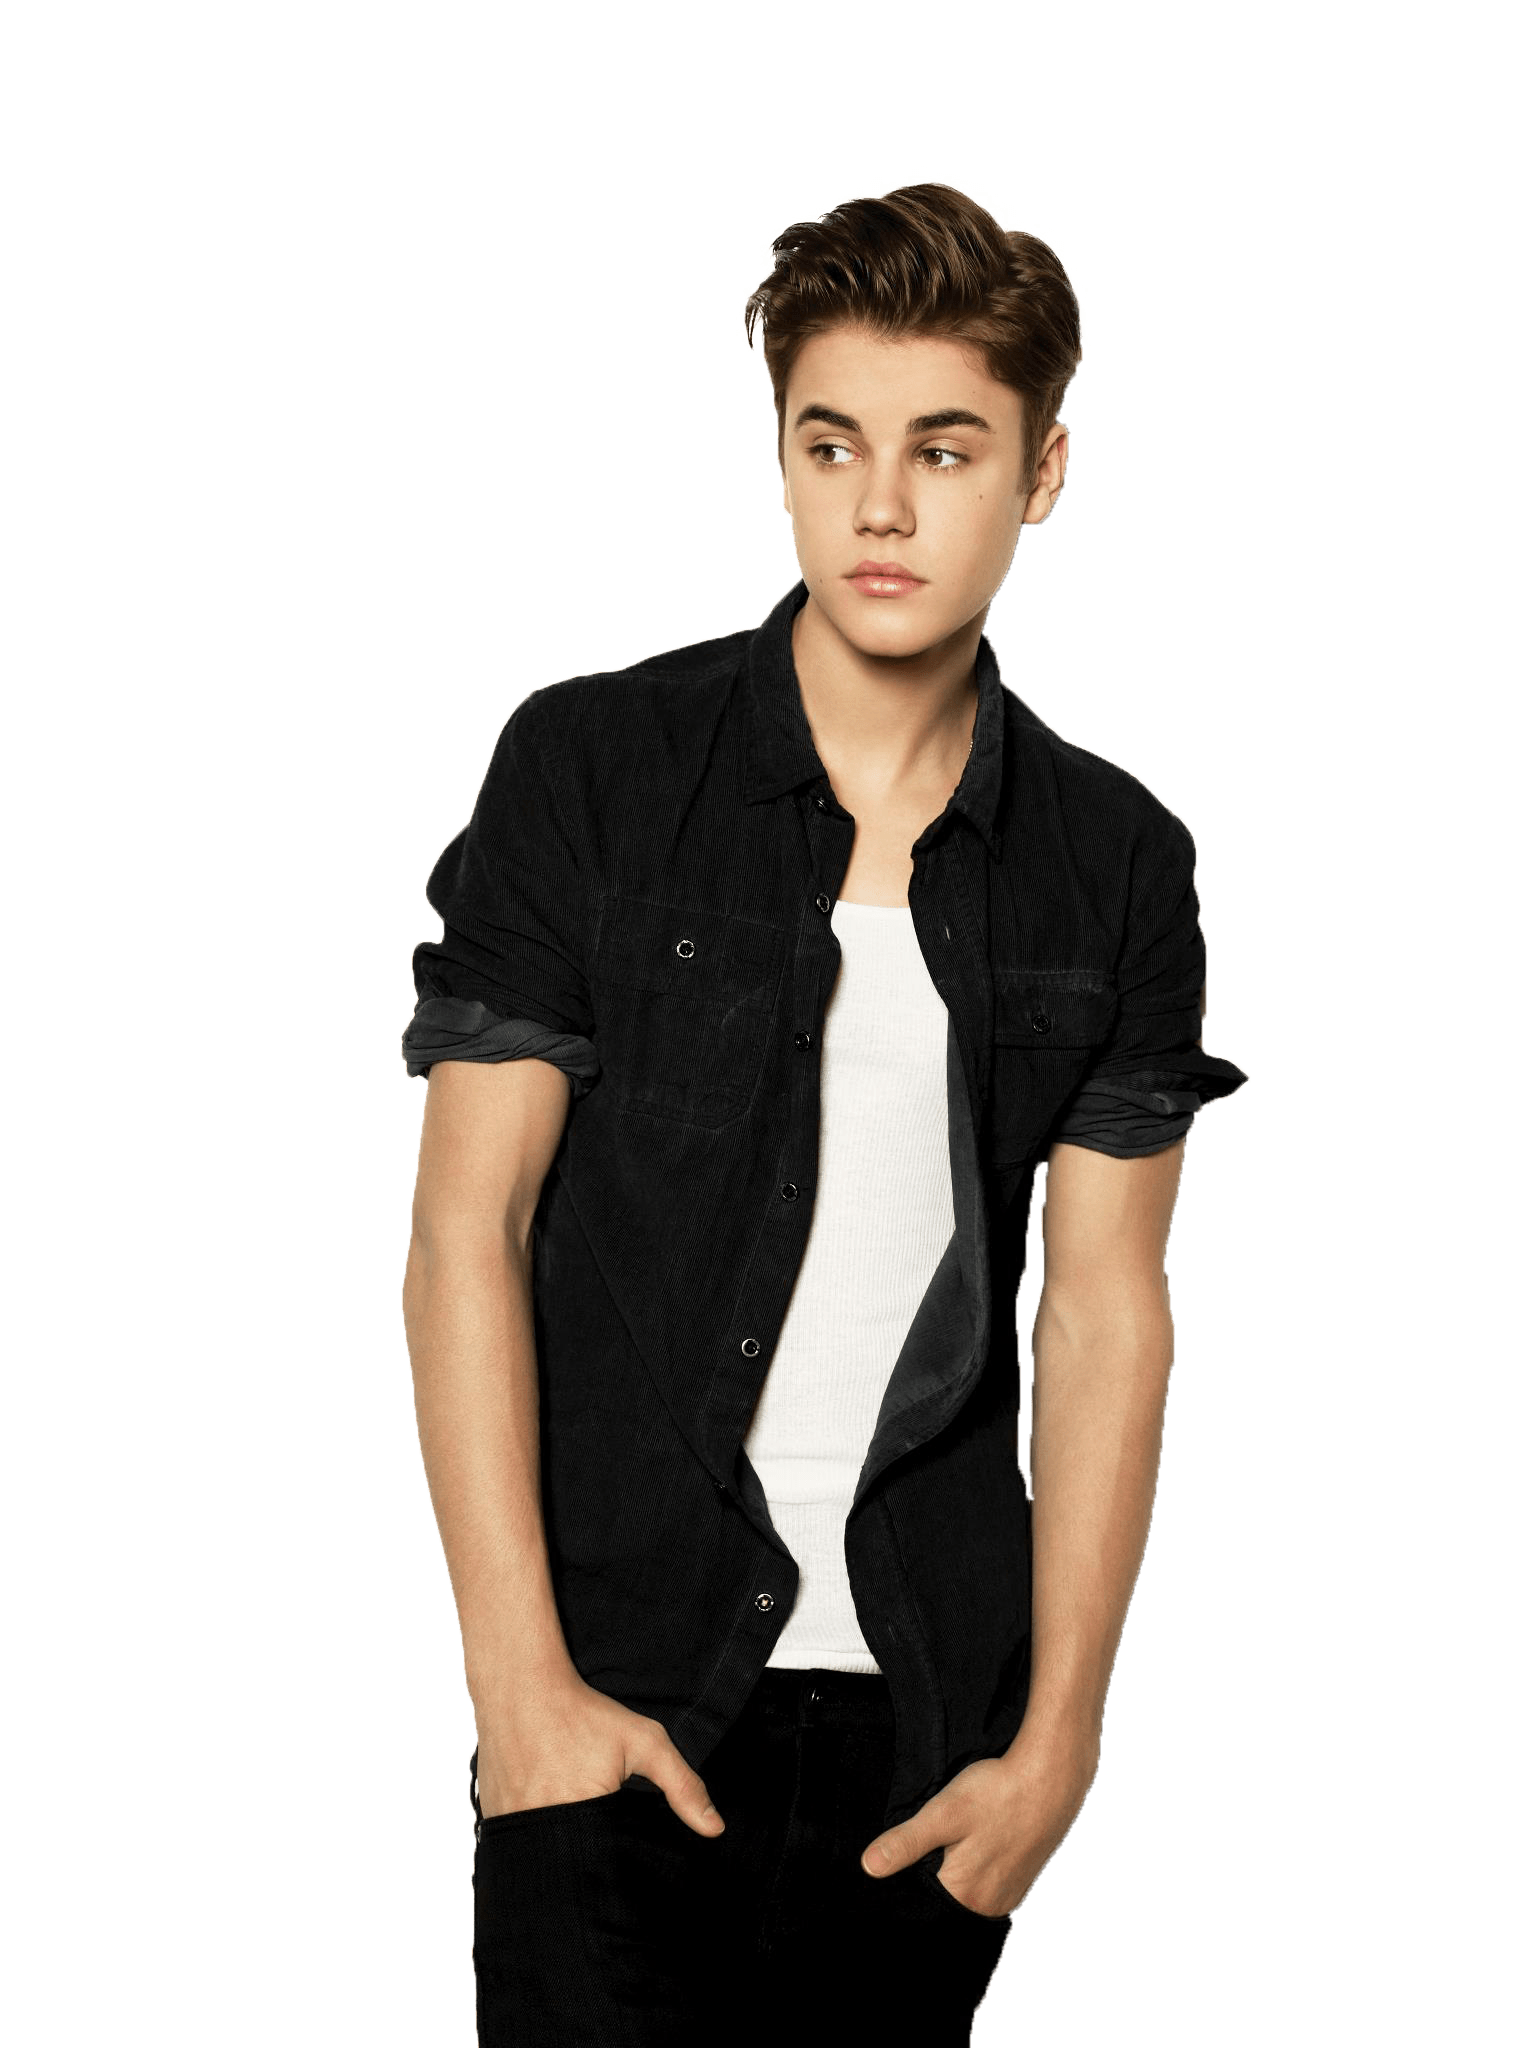 Standing Justin Bieber Transparent PNG S-Standing Justin Bieber Transparent PNG Sticker. What ClipartLook.com -19